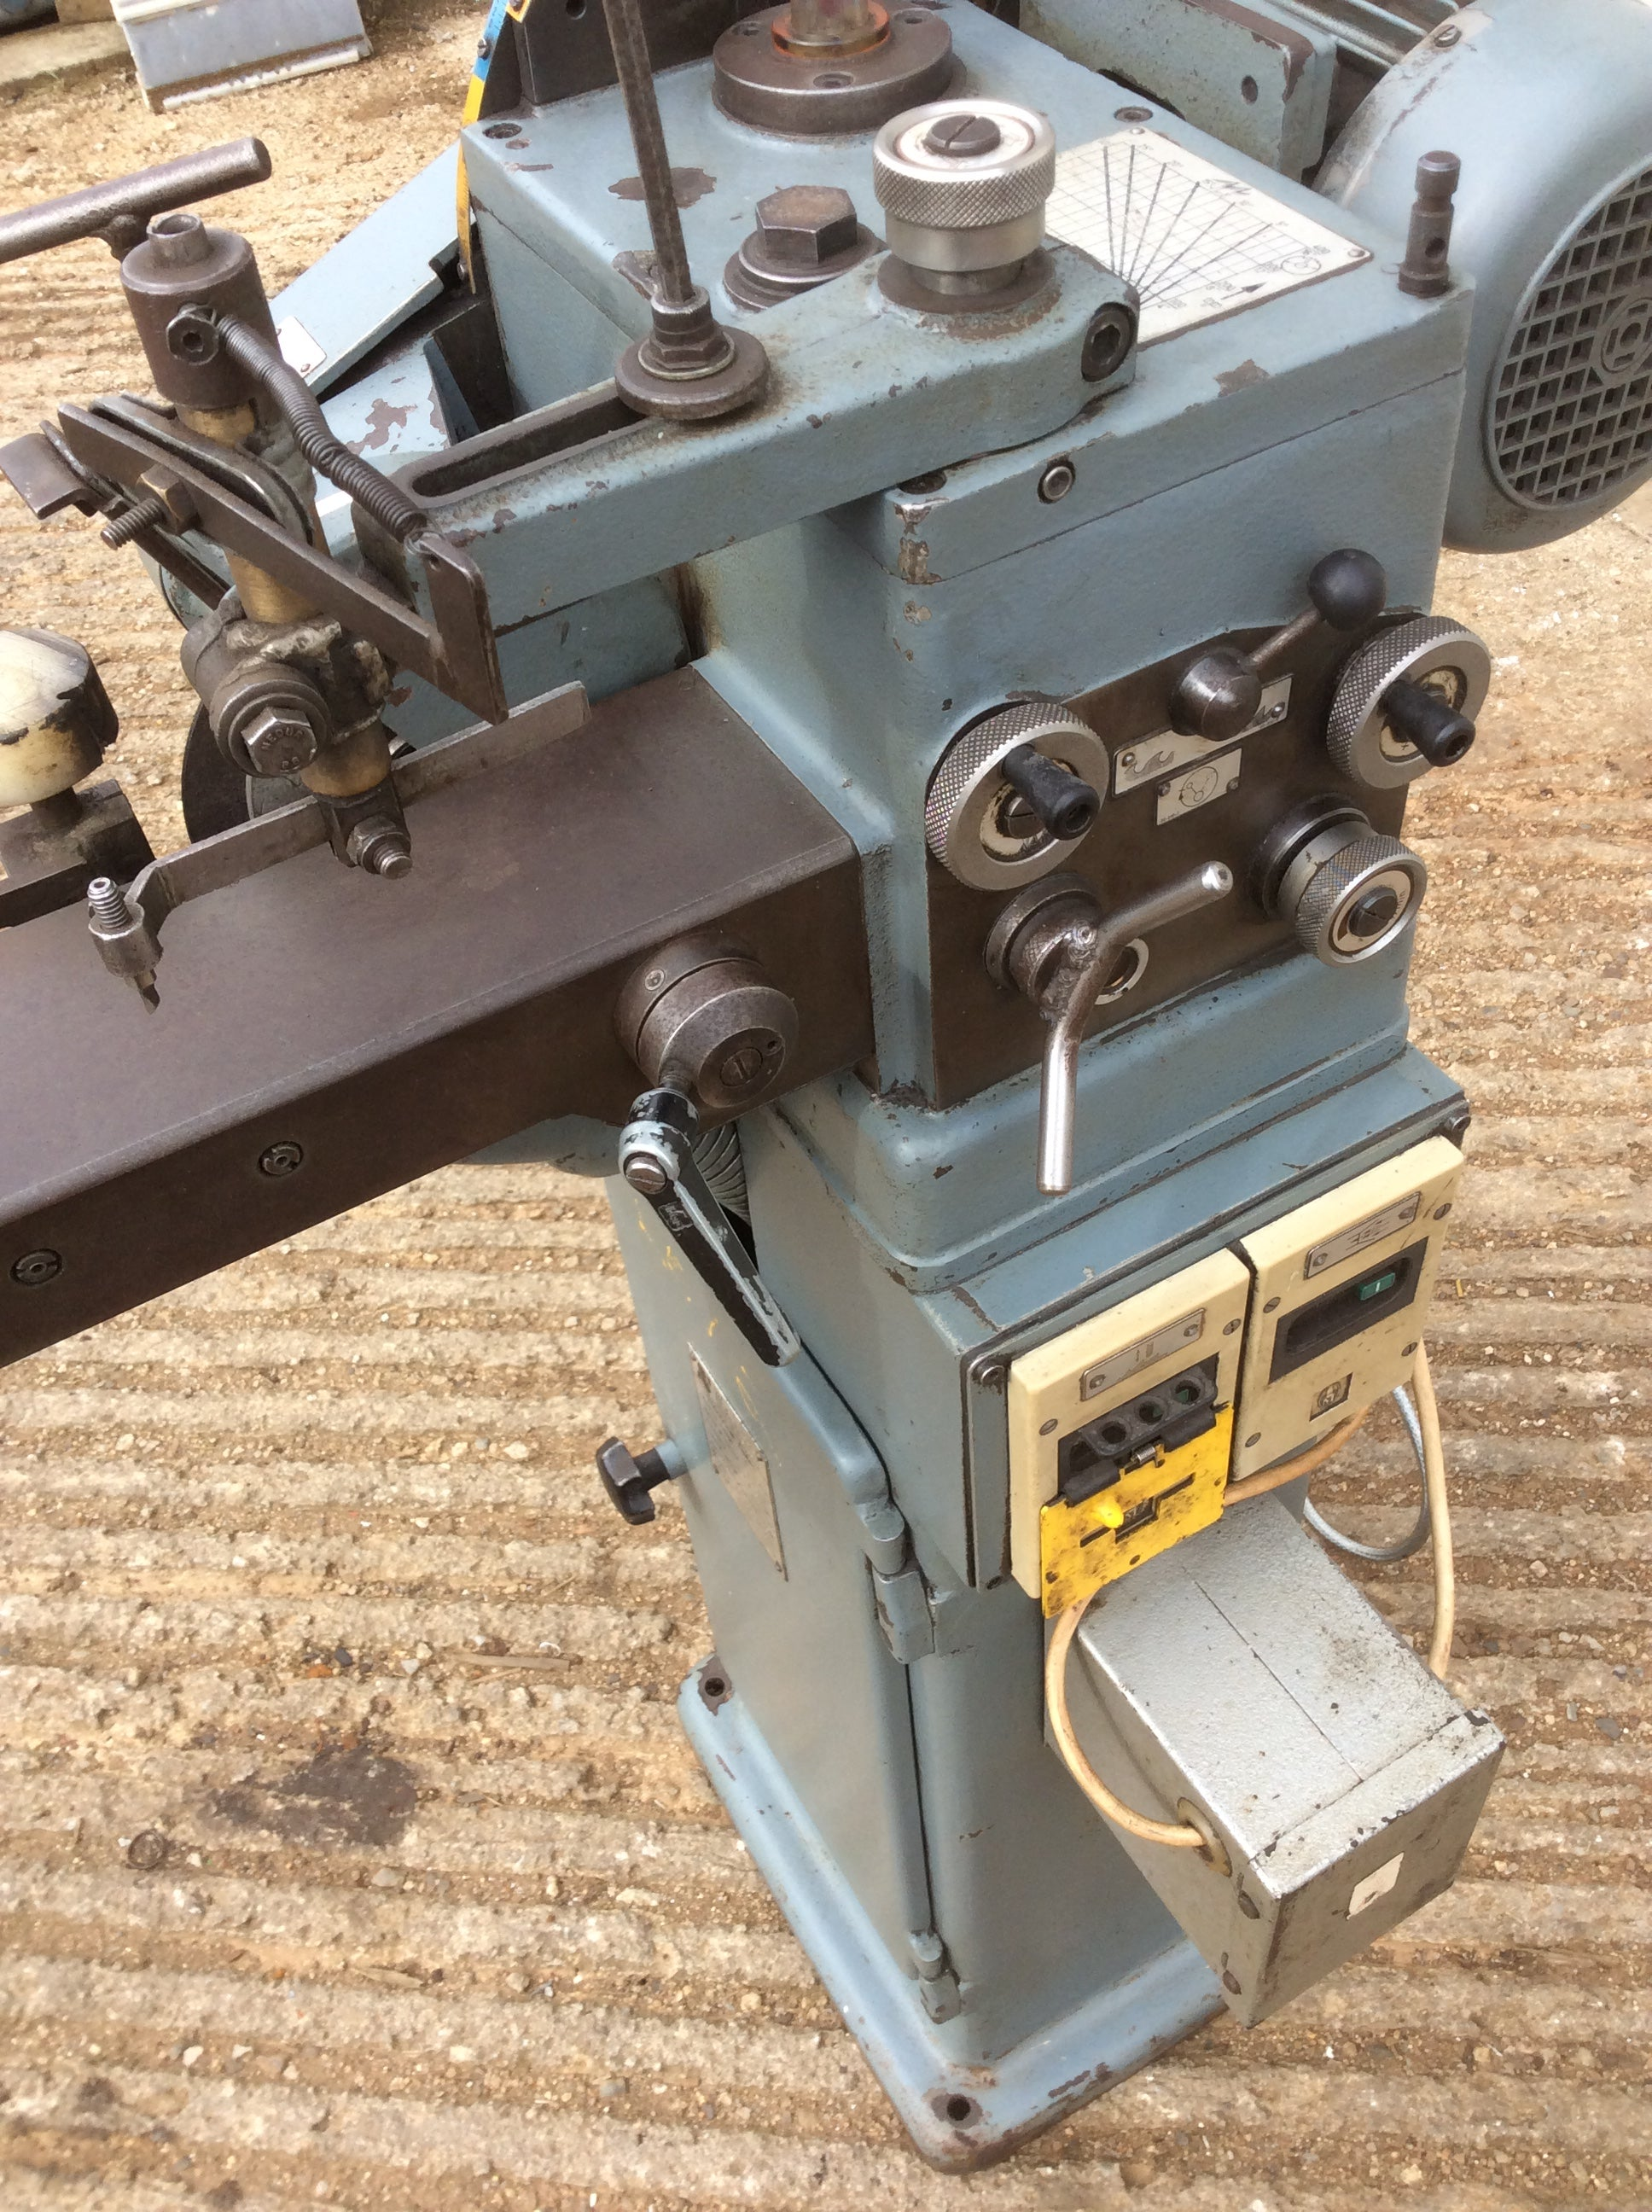 Bauknecht Saw Blade Sharpener